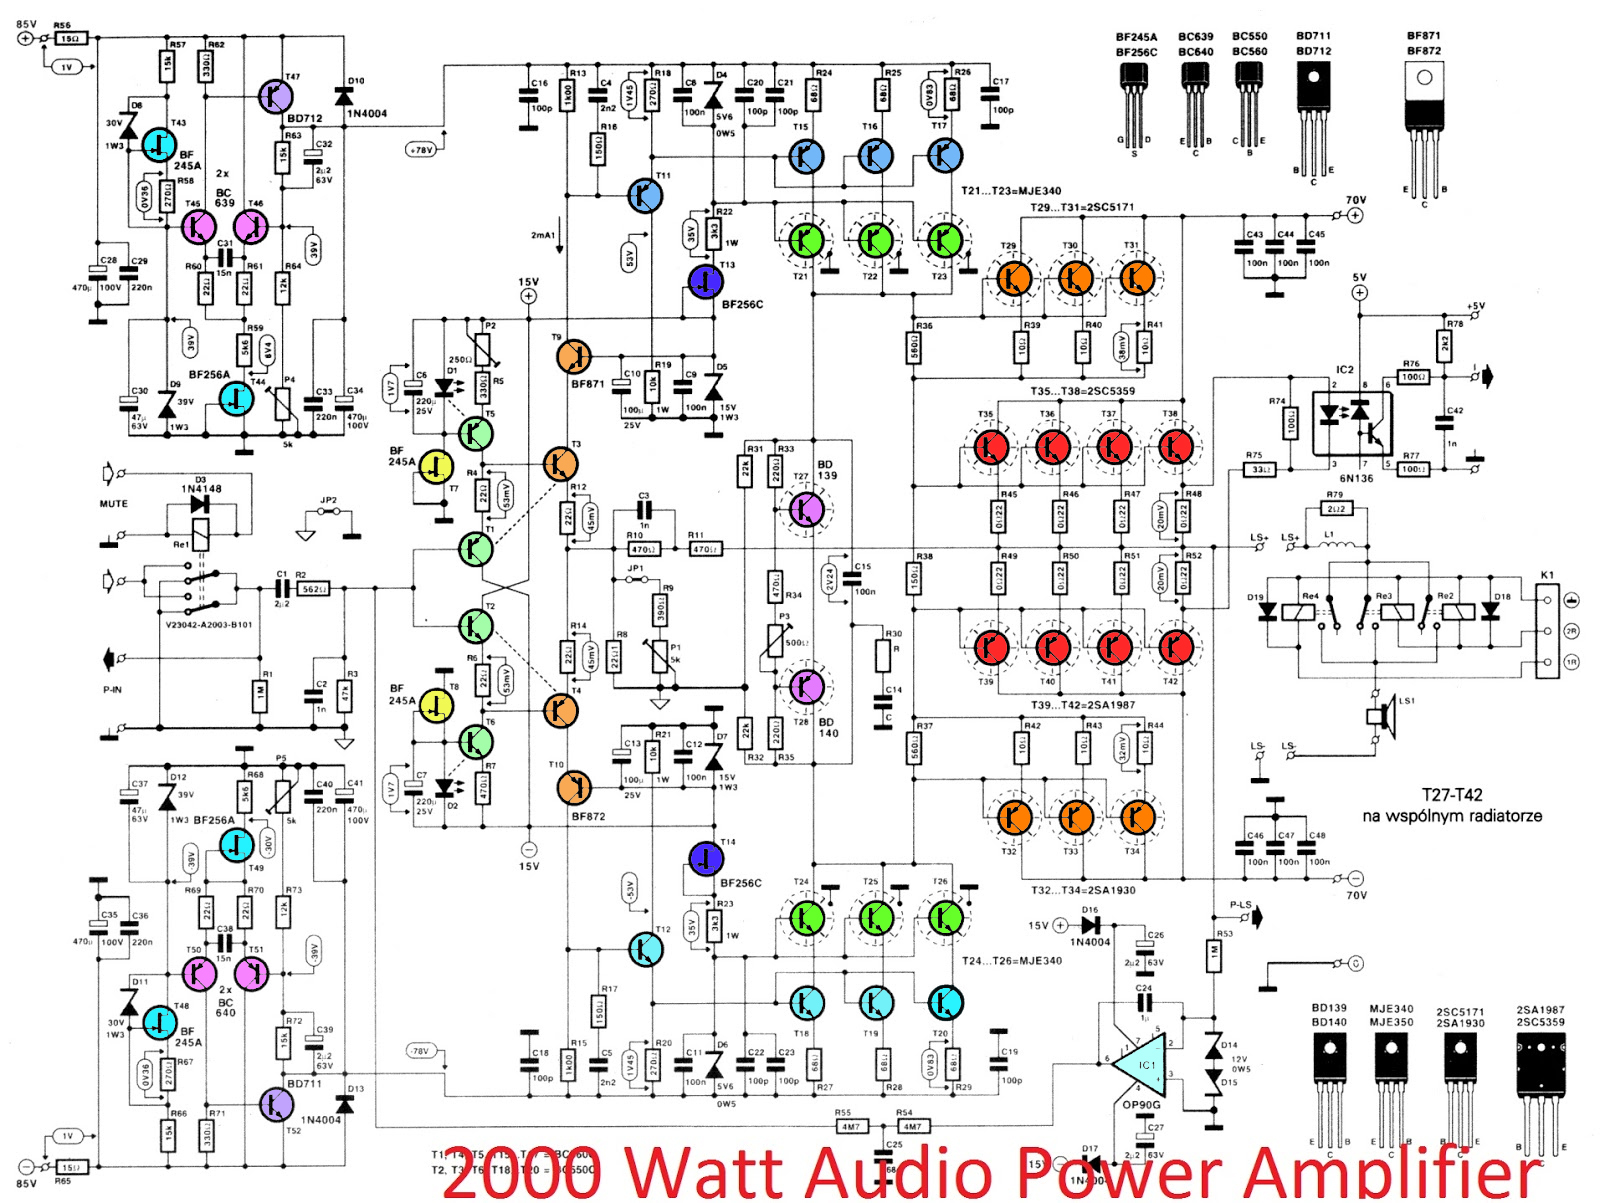 2000w Power Amplifier Circuit Diagrams Wiring Library Voltage Supply 1 Powersupplycircuit Diagram Seekiccom High 2sc5359 2sa1987